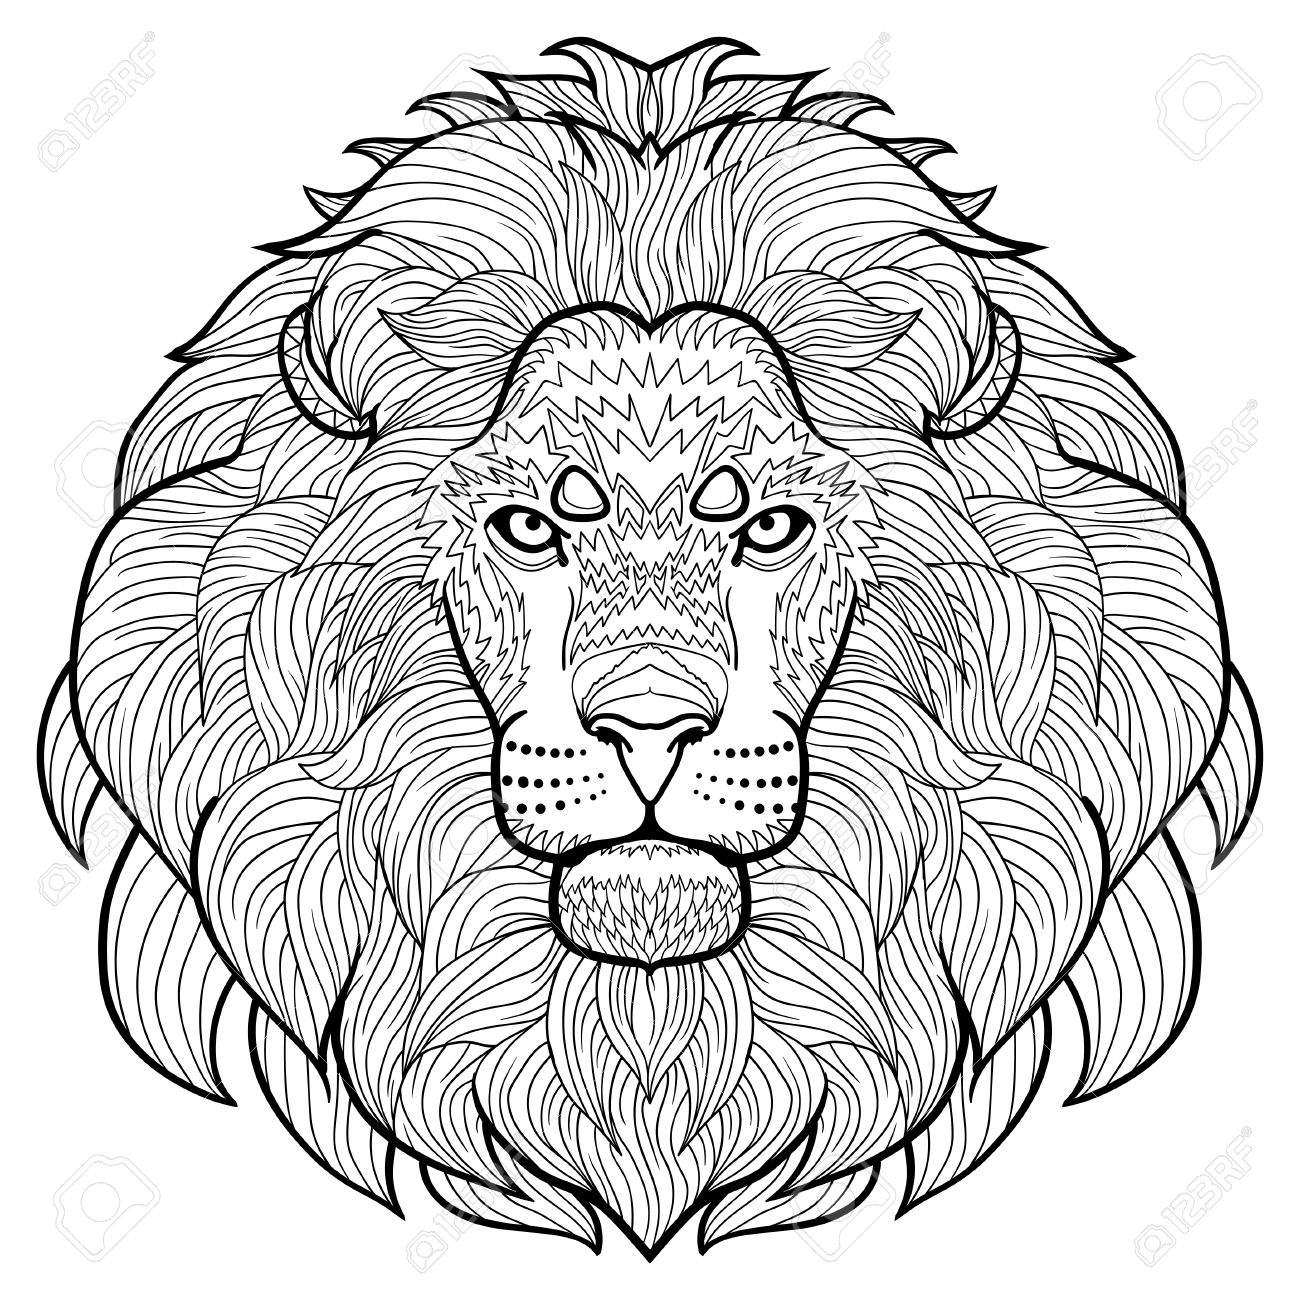 Animal Outline Drawing Anti Stress Coloring In The Head Of Royalty Free Cliparts Vectors And Stock Illustration Image 57040790 See more ideas about lion drawing simple, lion drawing, lion face drawing. animal outline drawing anti stress coloring in the head of